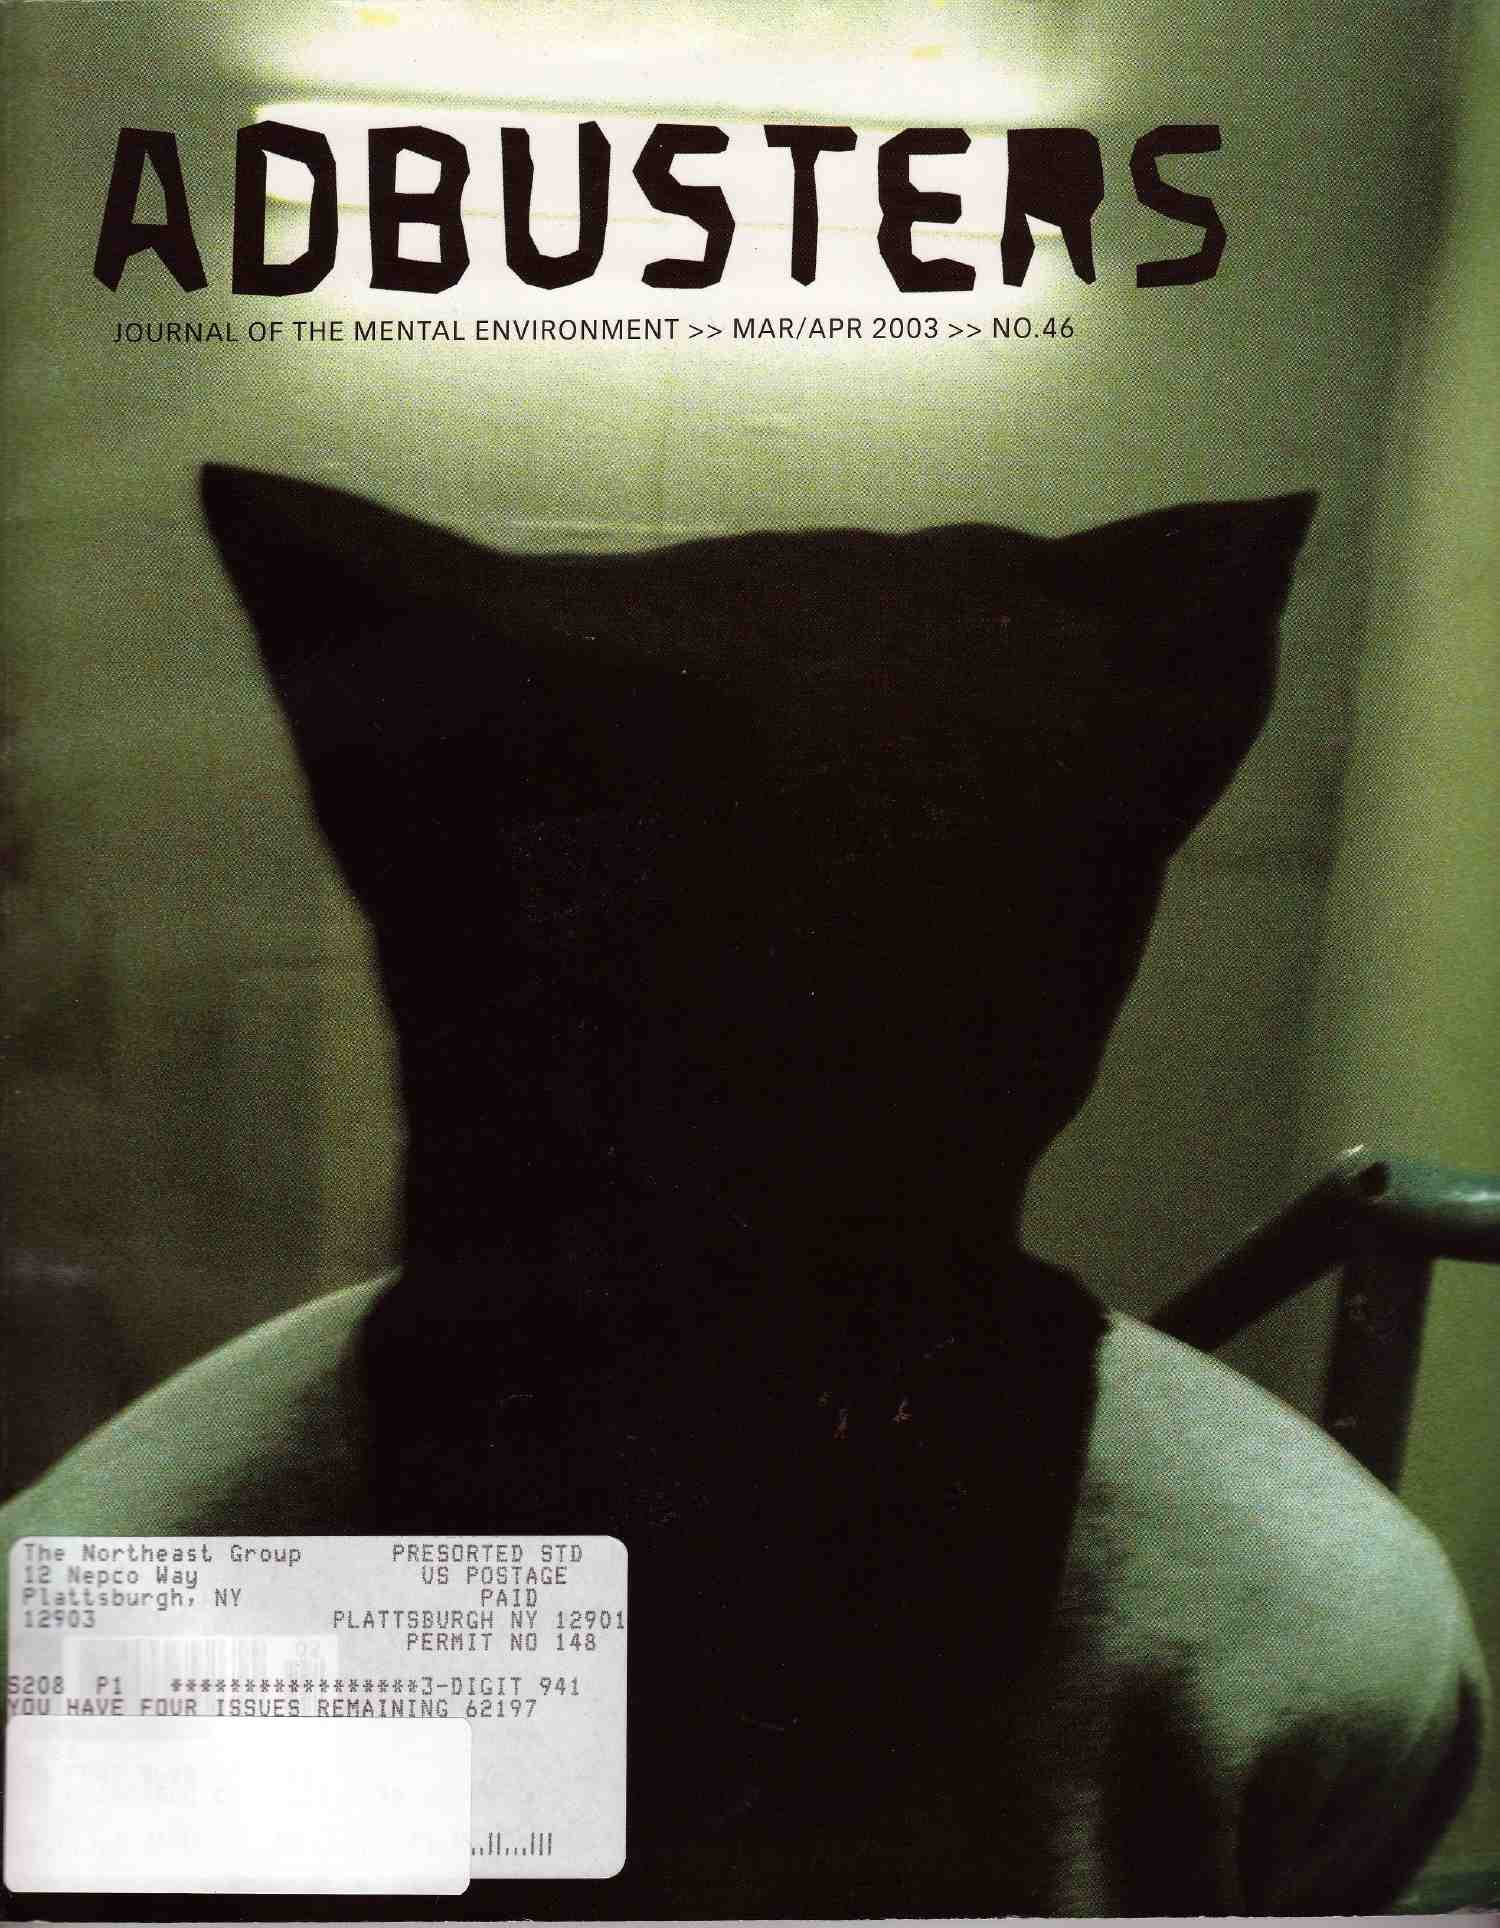 Download Adbusters, Journal of the Mental Environment, Mar/Apr 2002, No. 40 (Journal of the Mental Environment (bi-montly periodical), Vol. 10) ebook